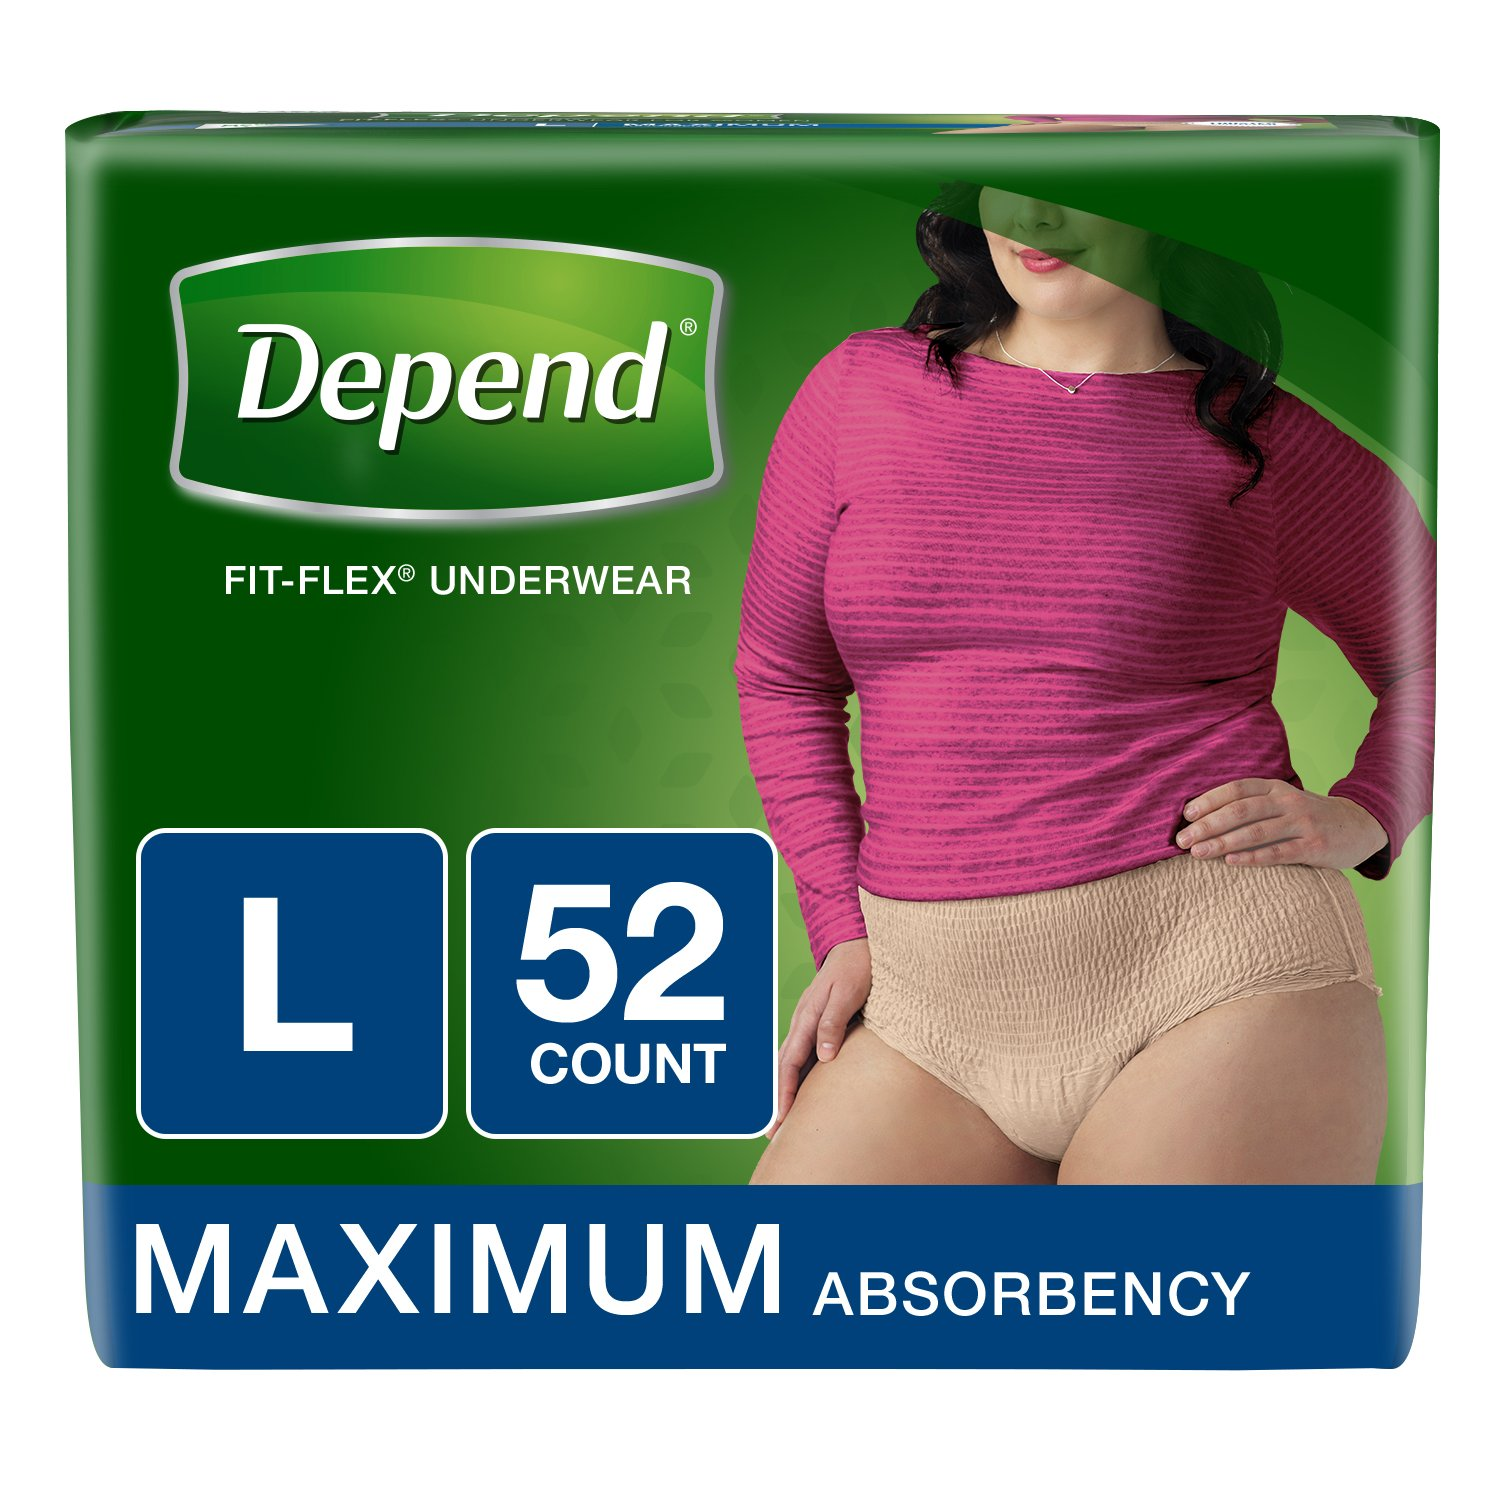 Depend FIT-FLEX Incontinence Underwear for Women, Maximum Absorbency, L, Tan, 52 Count (Packaging may vary)